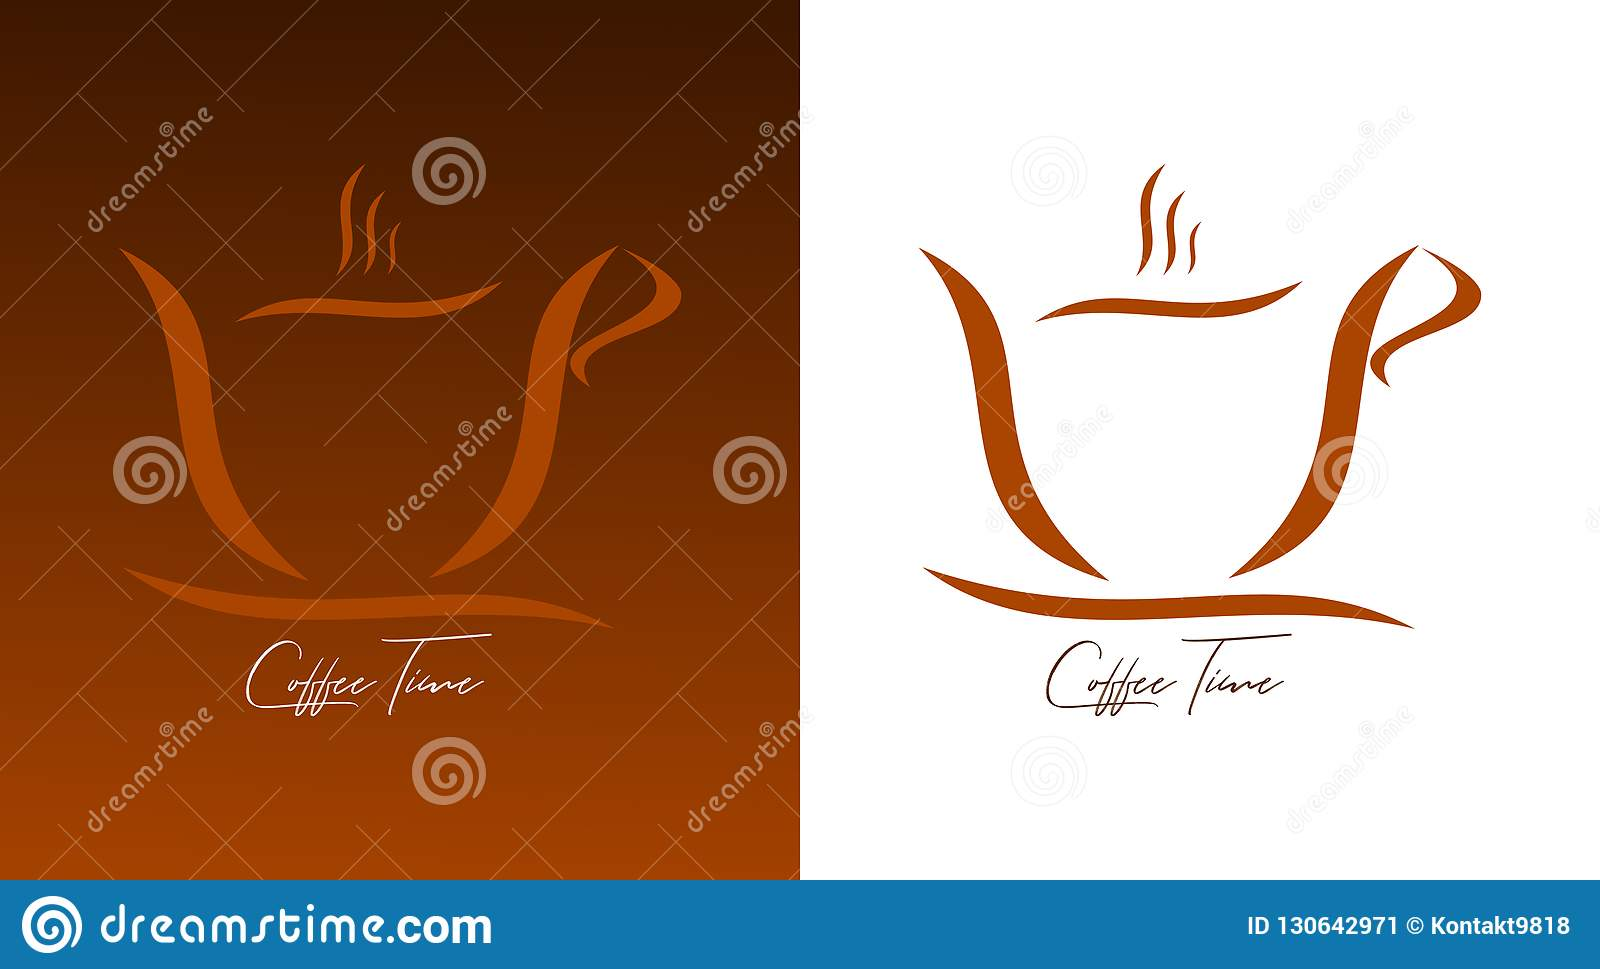 A cup of coffee - a cup of coffee on a white and brown background